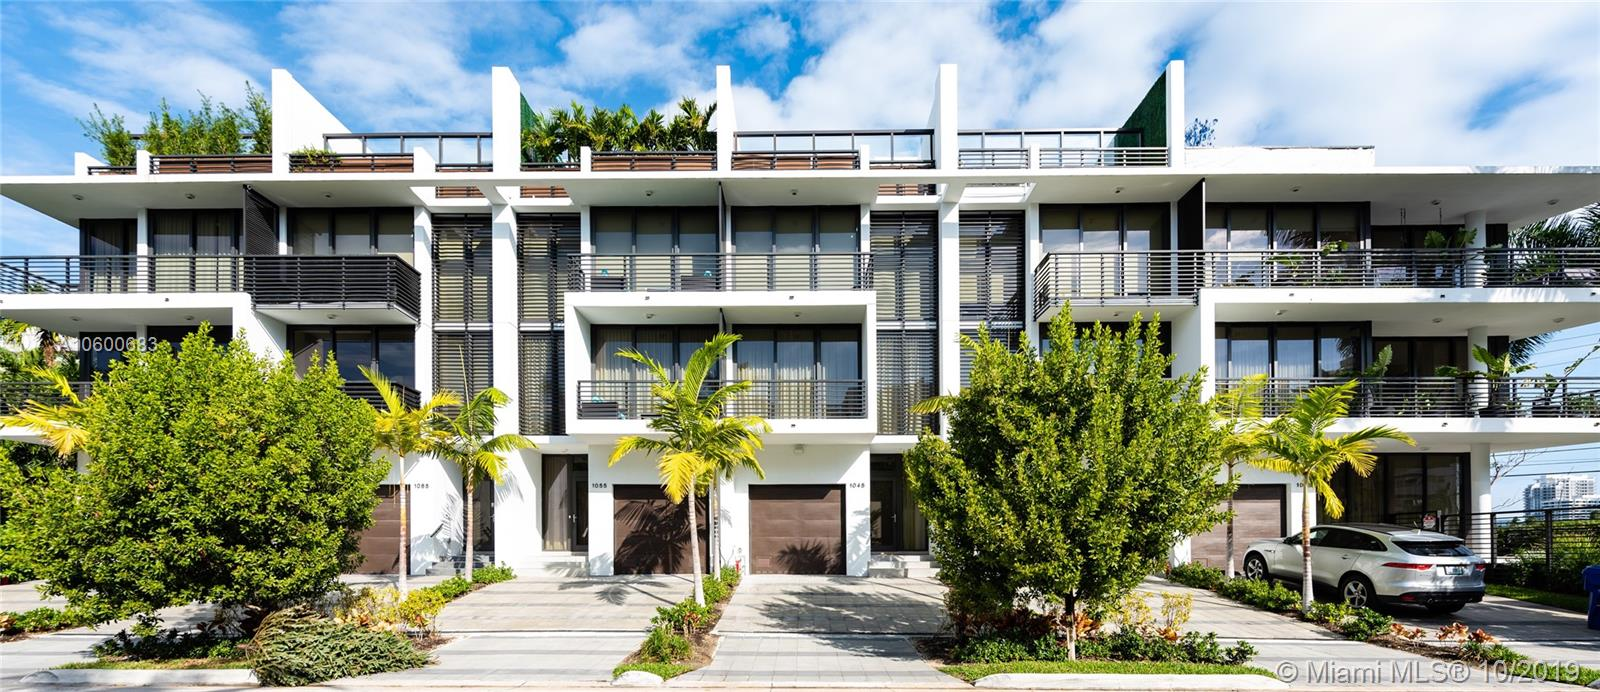 1045  99 Street #1045 For Sale A10600683, FL